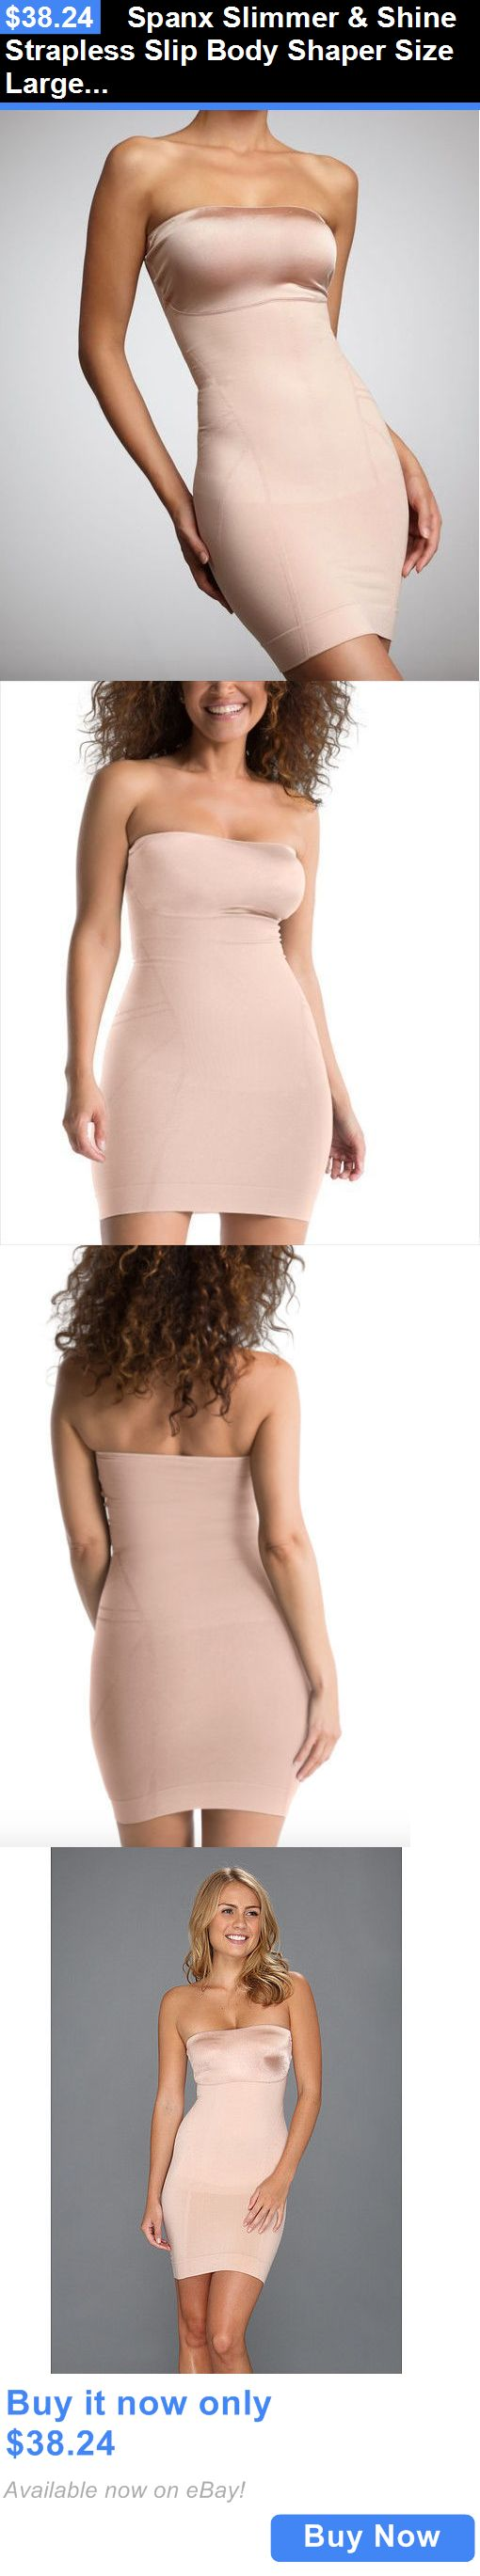 Women Shapewear: Spanx Slimmer And Shine Strapless Slip Body Shaper Size Large 1059 New Rose Gold BUY IT NOW ONLY: $38.24